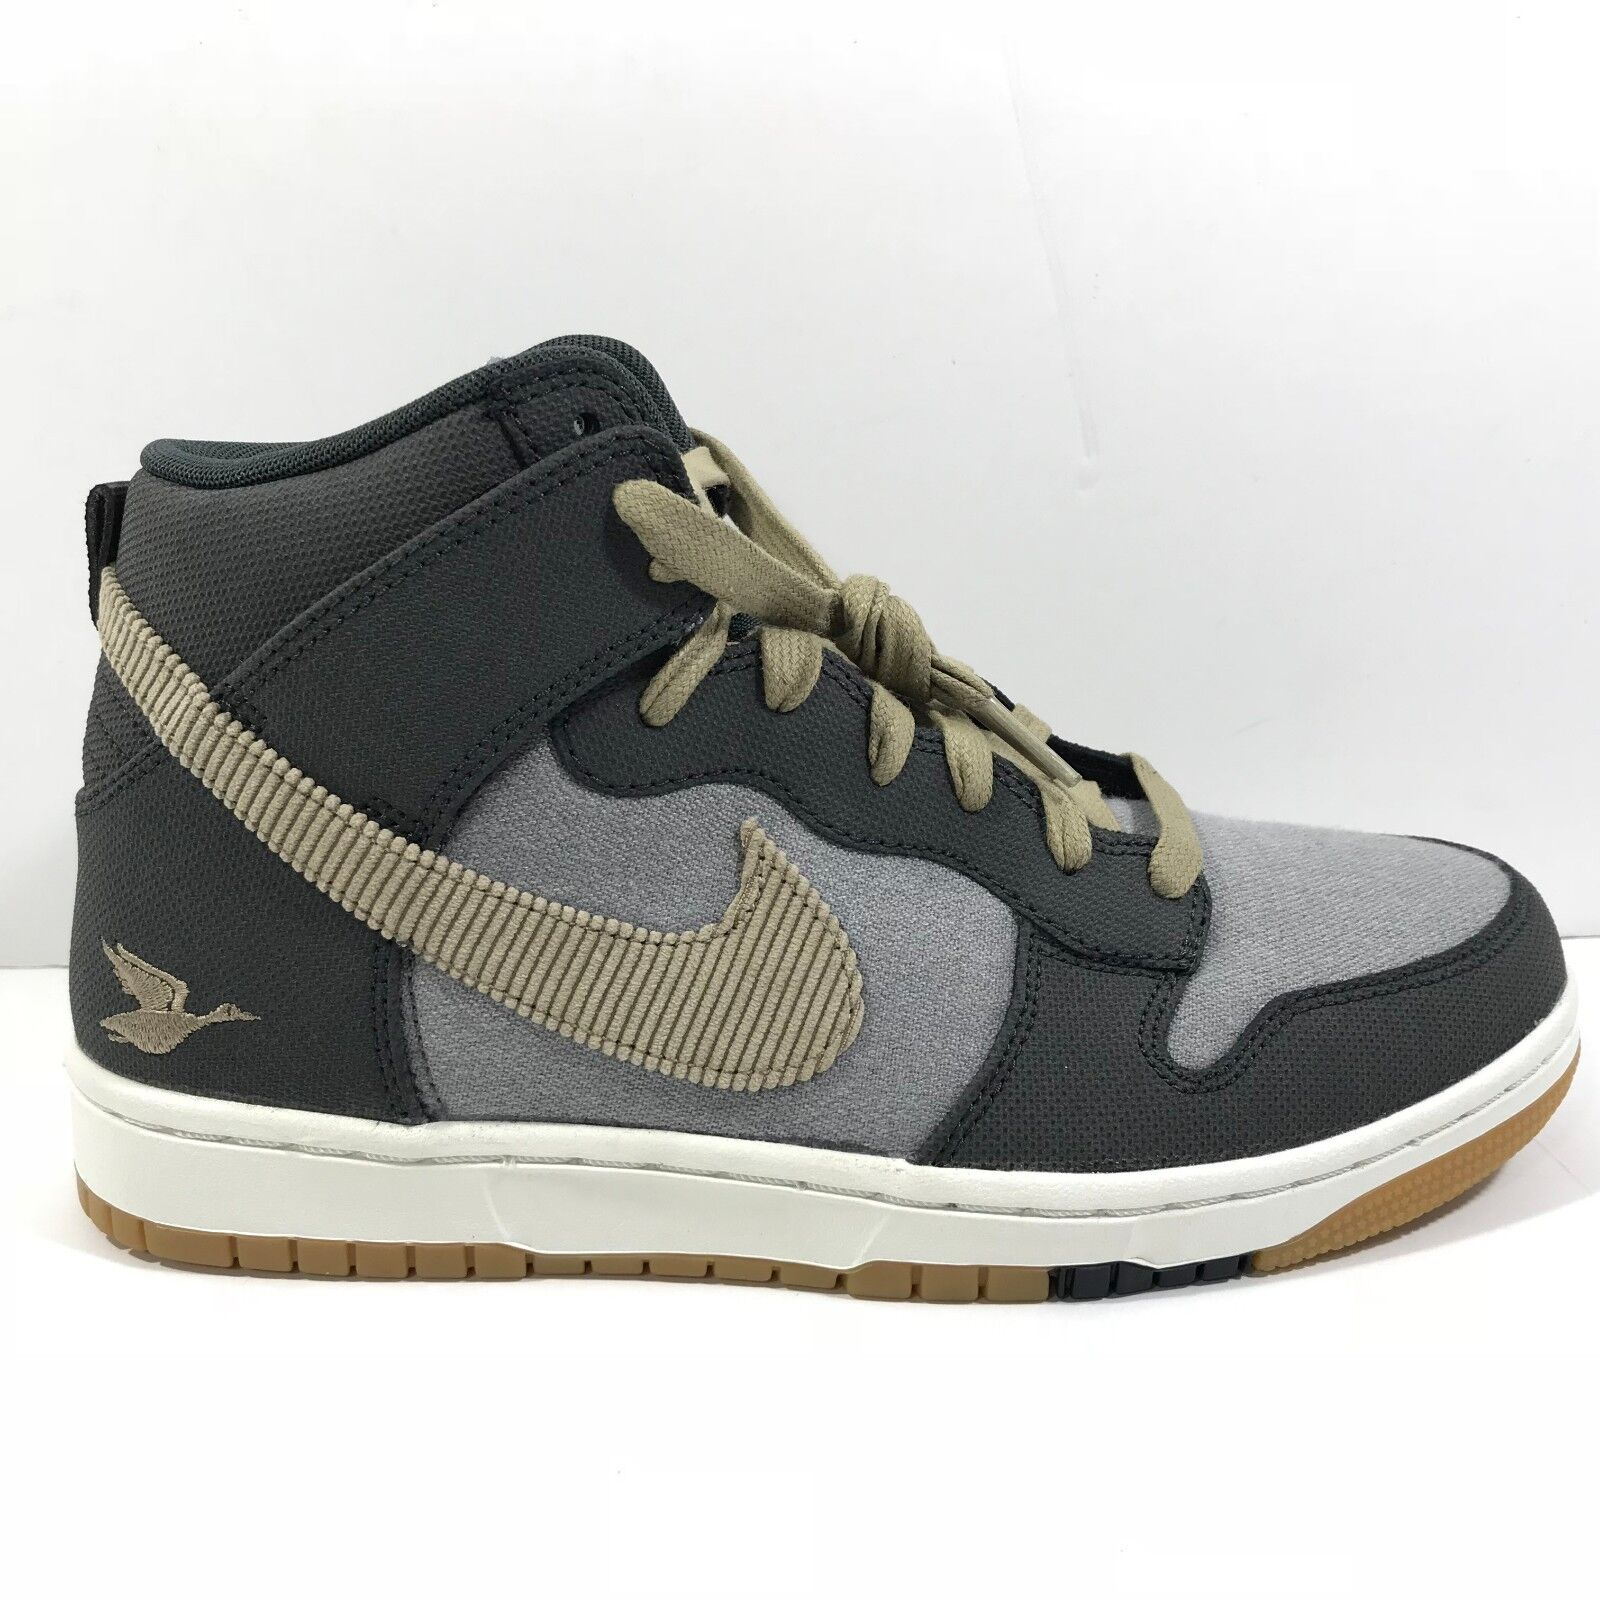 Casual wild Nike Mens Dunk Comfort Premium Shoes 7.5 705433-003 Y0205